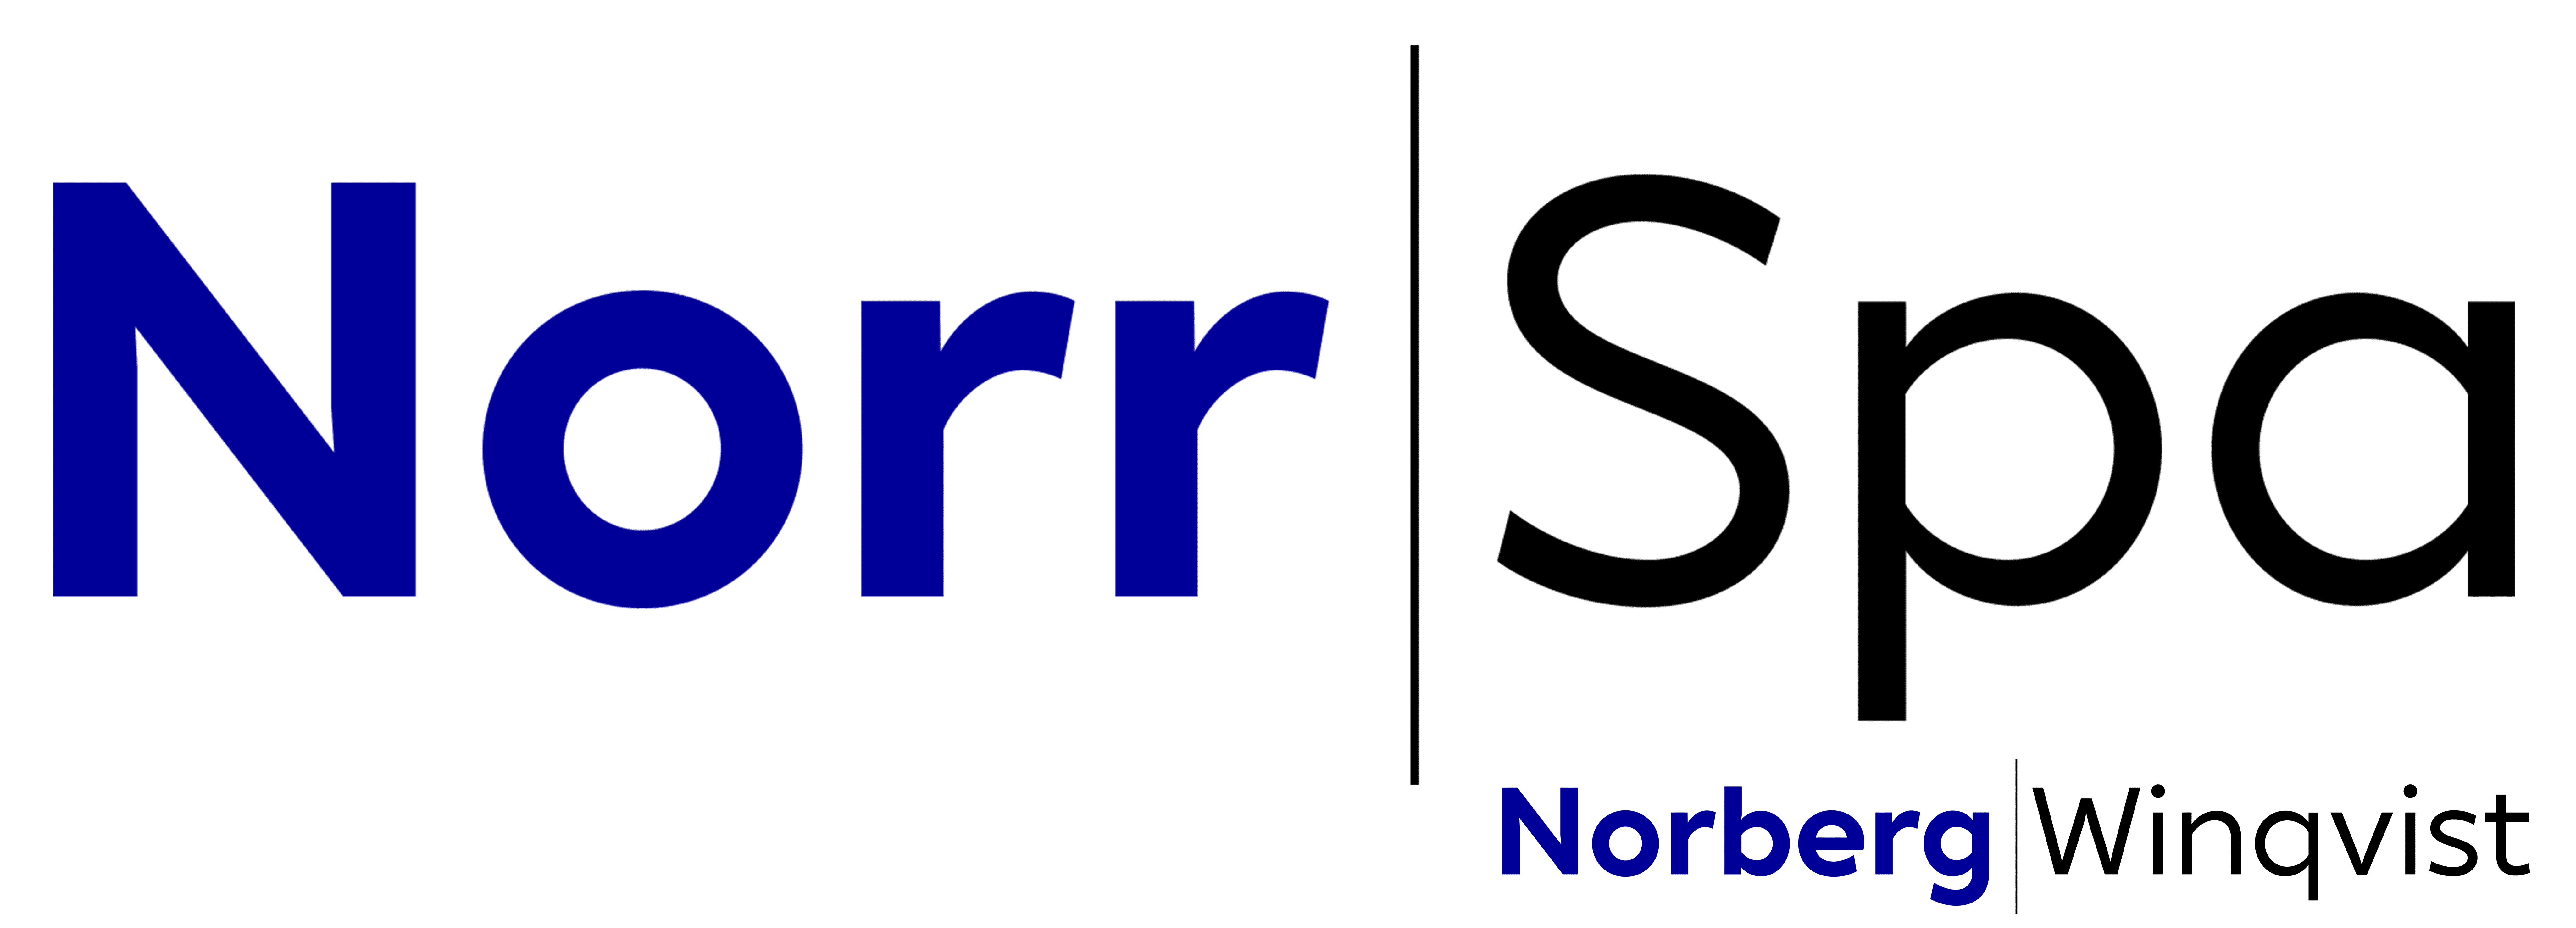 Norrspa